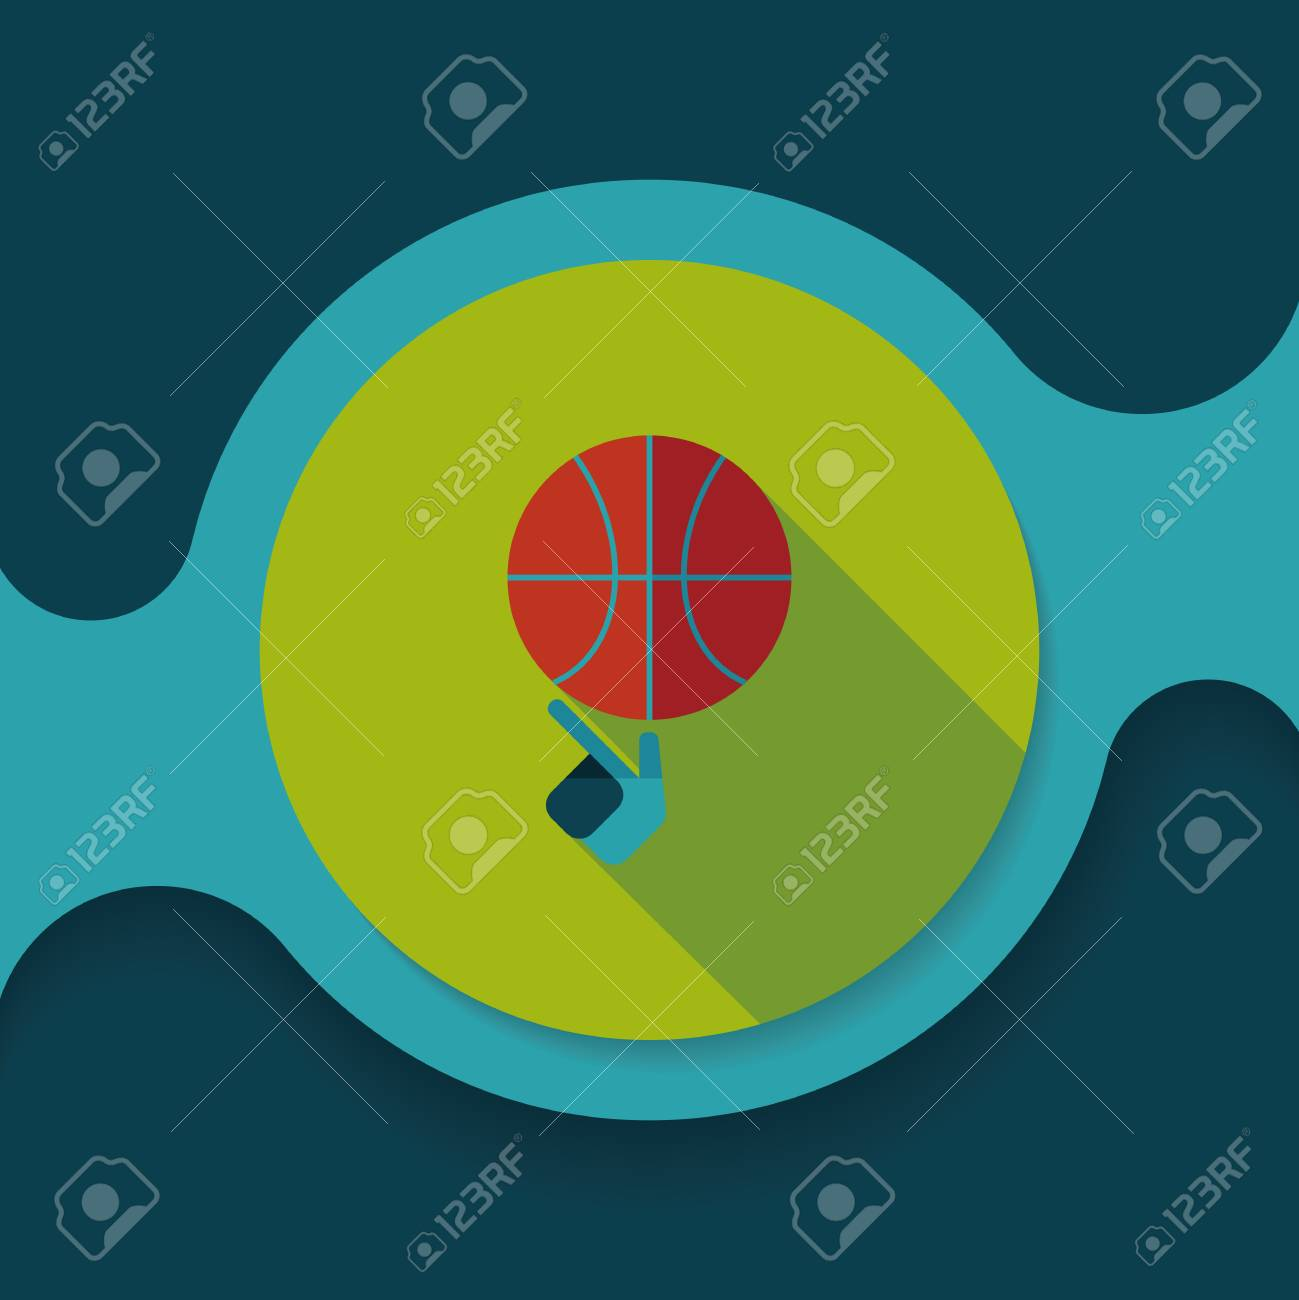 Basketball flat icon with long shadow - 51309657